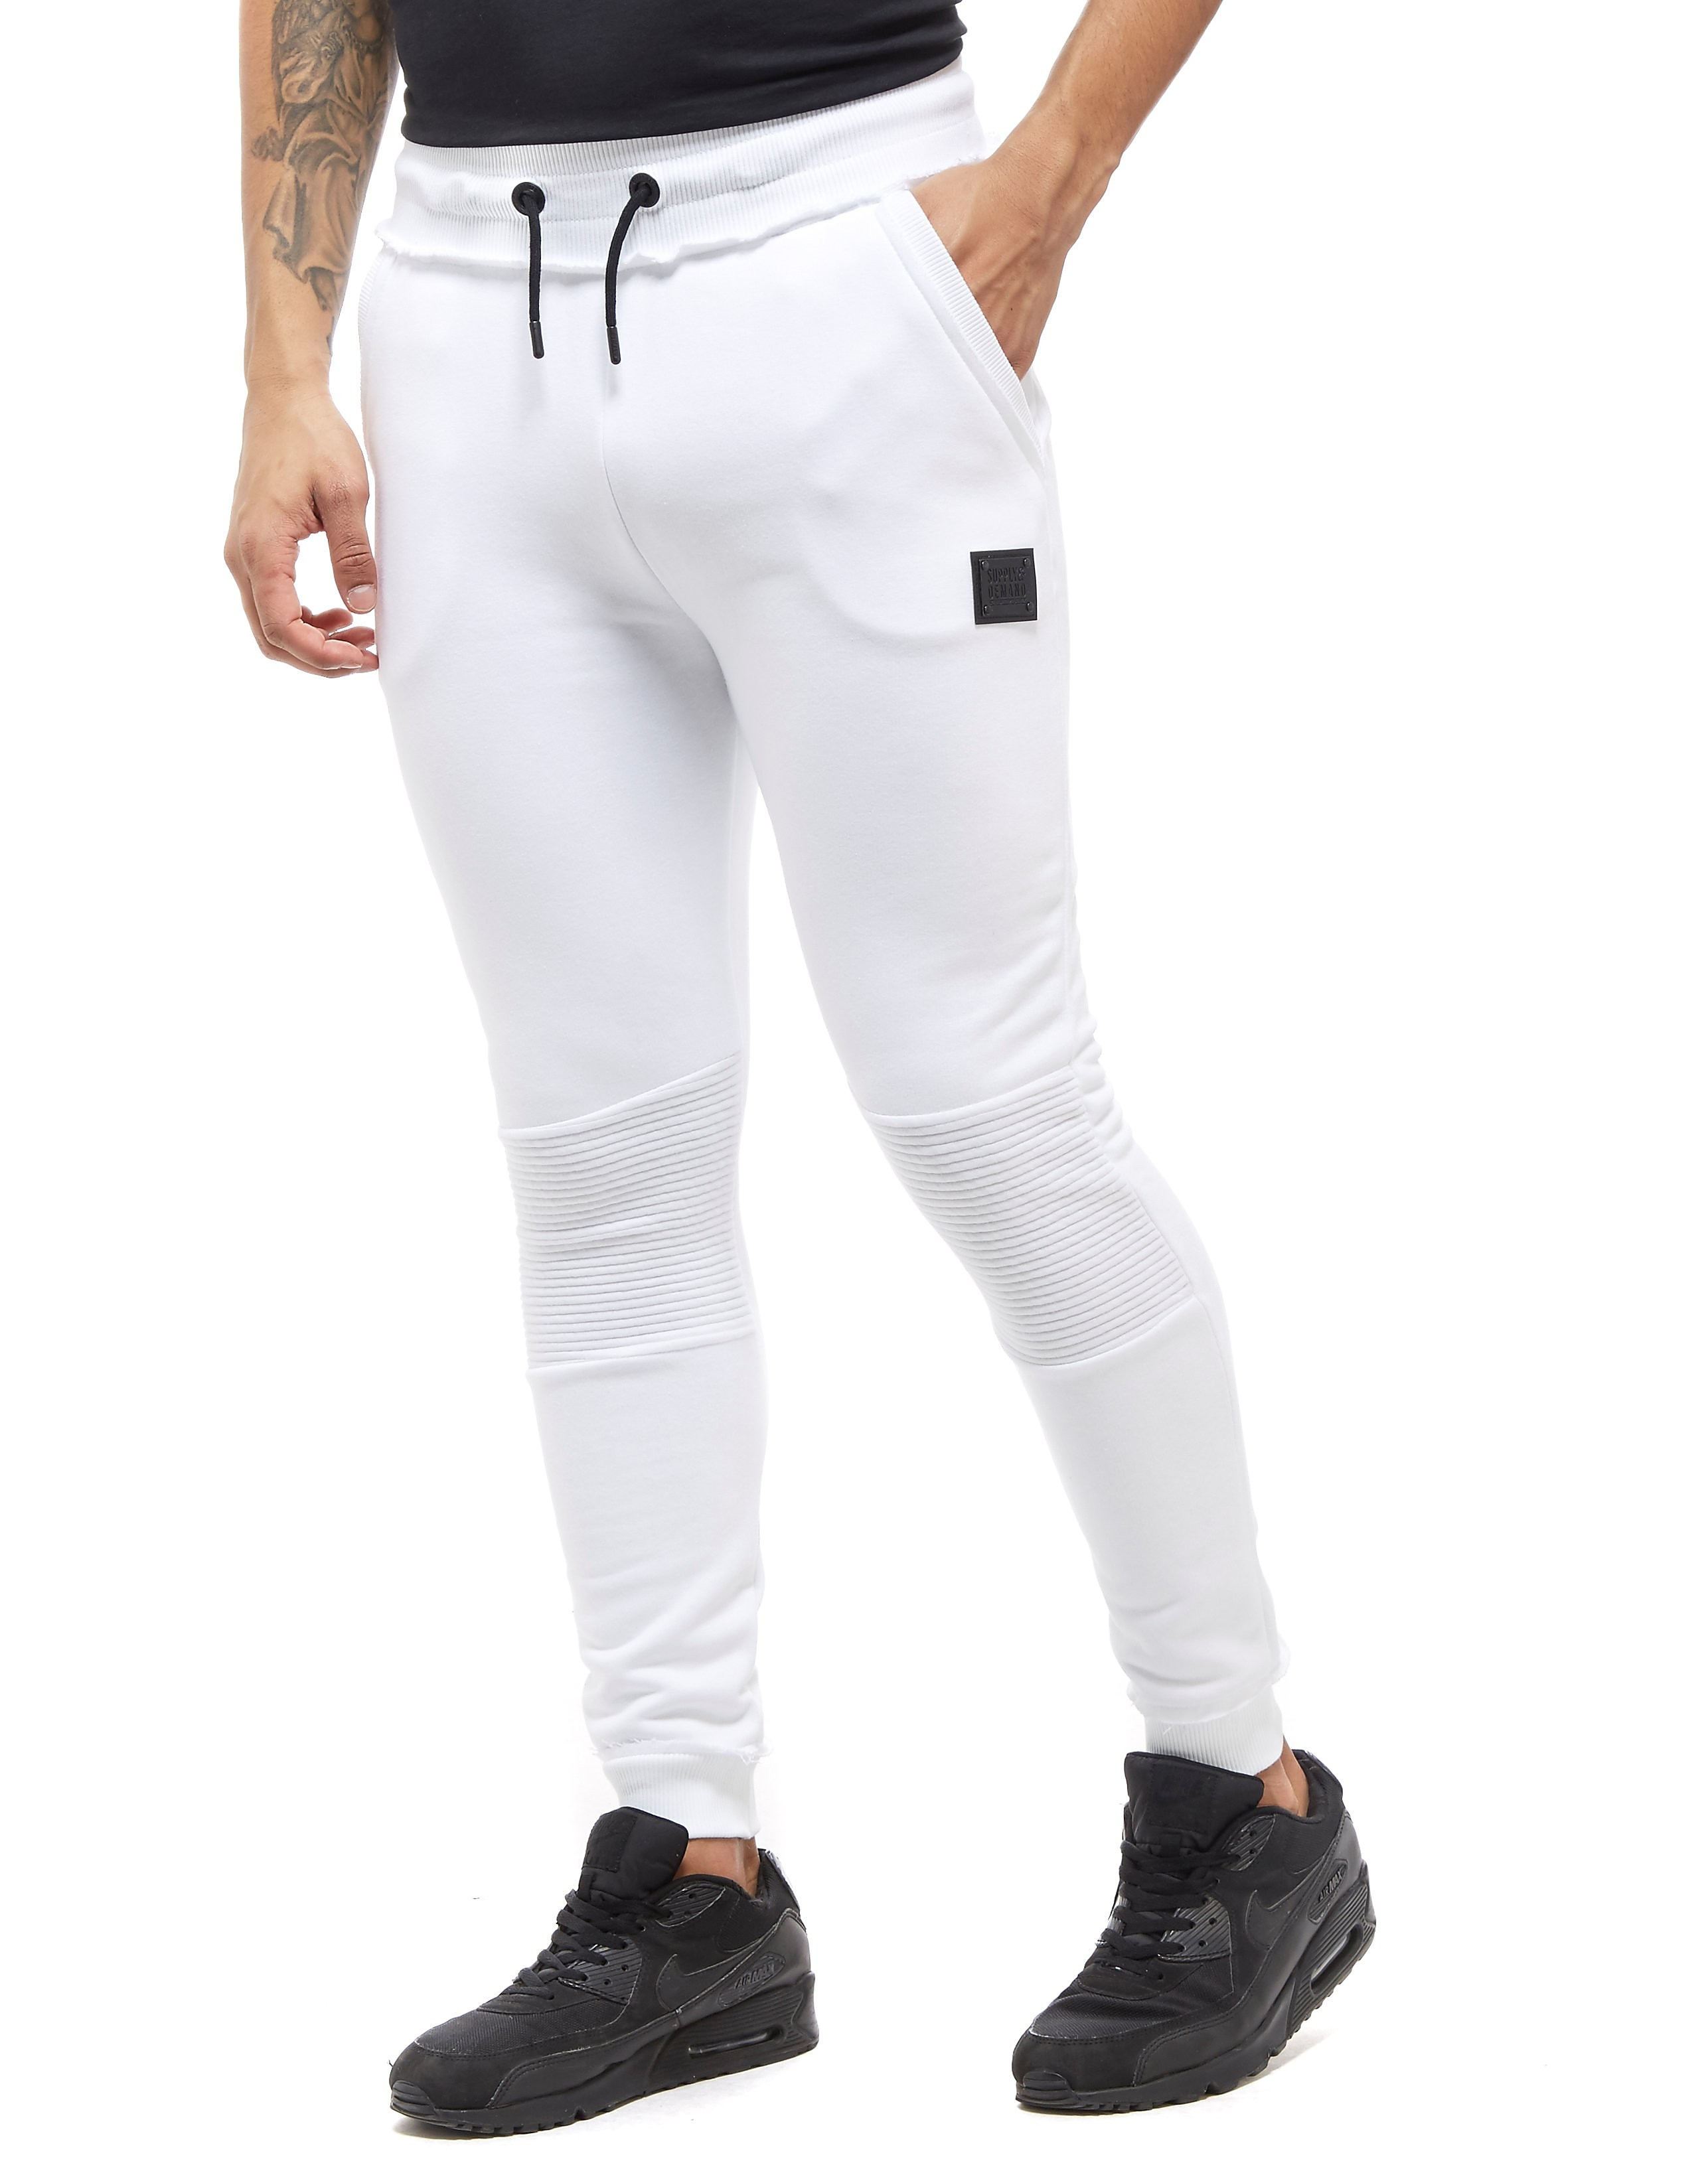 Supply & Demand Detroit Joggers - Only at JD, White